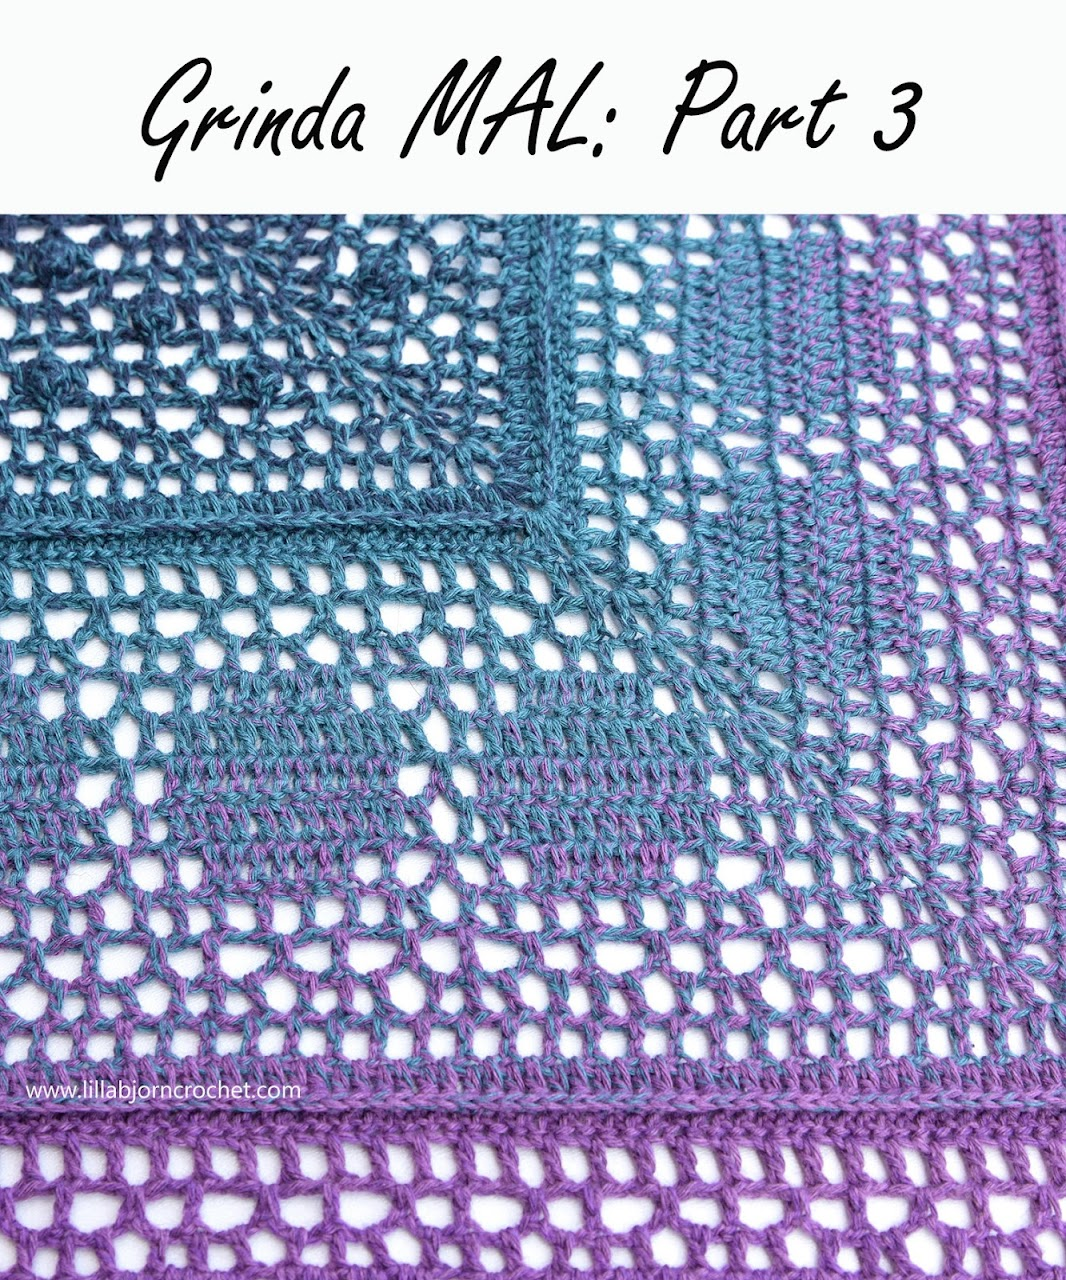 Grinda MAL: Part 3. Free #crochet pattern by www.lillabjorncrochet.com